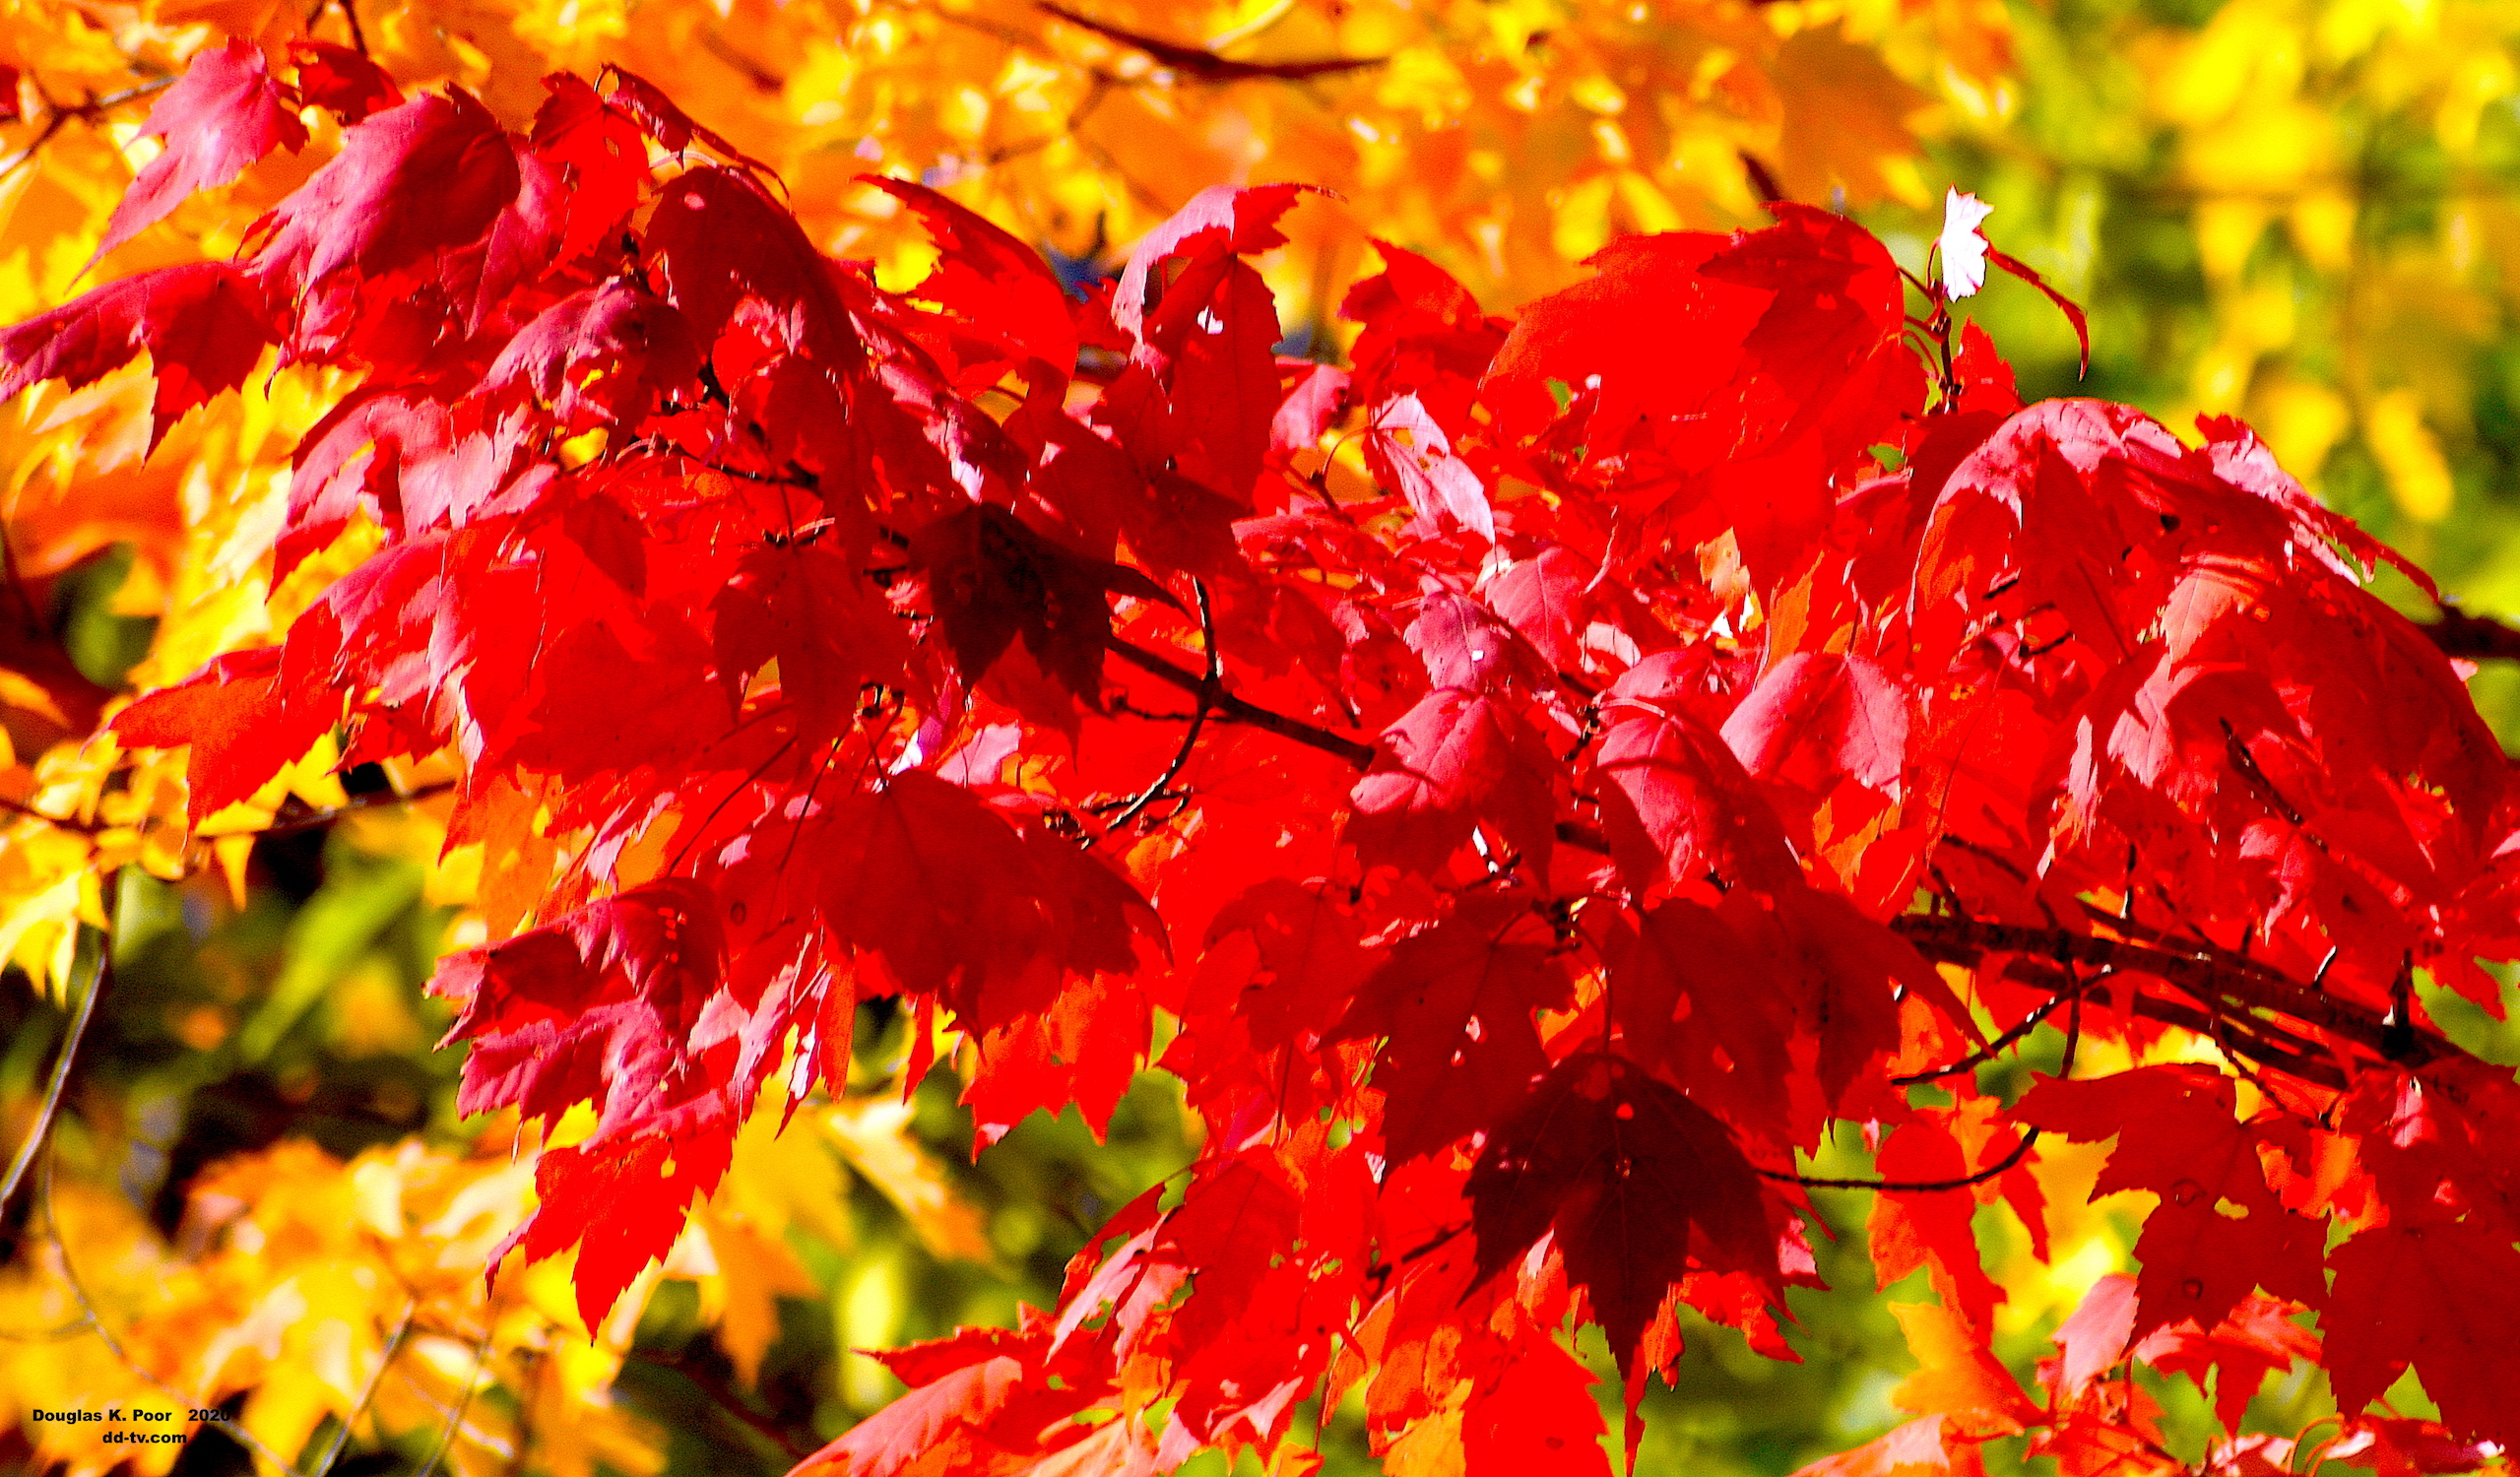 ================-LIMB-RED-MAPLE-FOLIAGE-1-smaller-size============================================================================================================-LIMB-RED-MAPLE-FOLIAGE-1-smaller-size